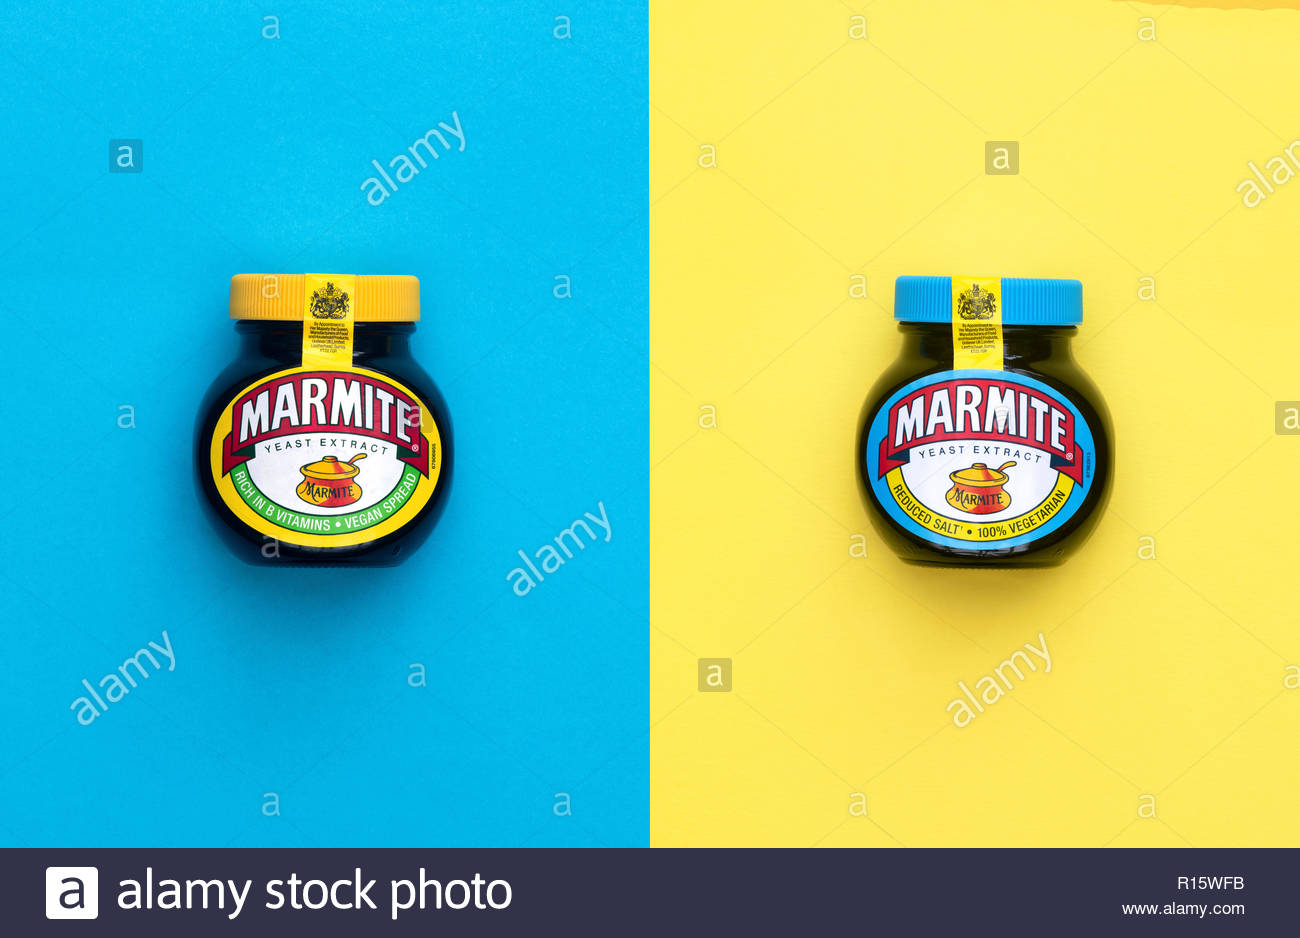 Original Marmite and reduced salt marmite on on a yellow and blue background - Stock Image